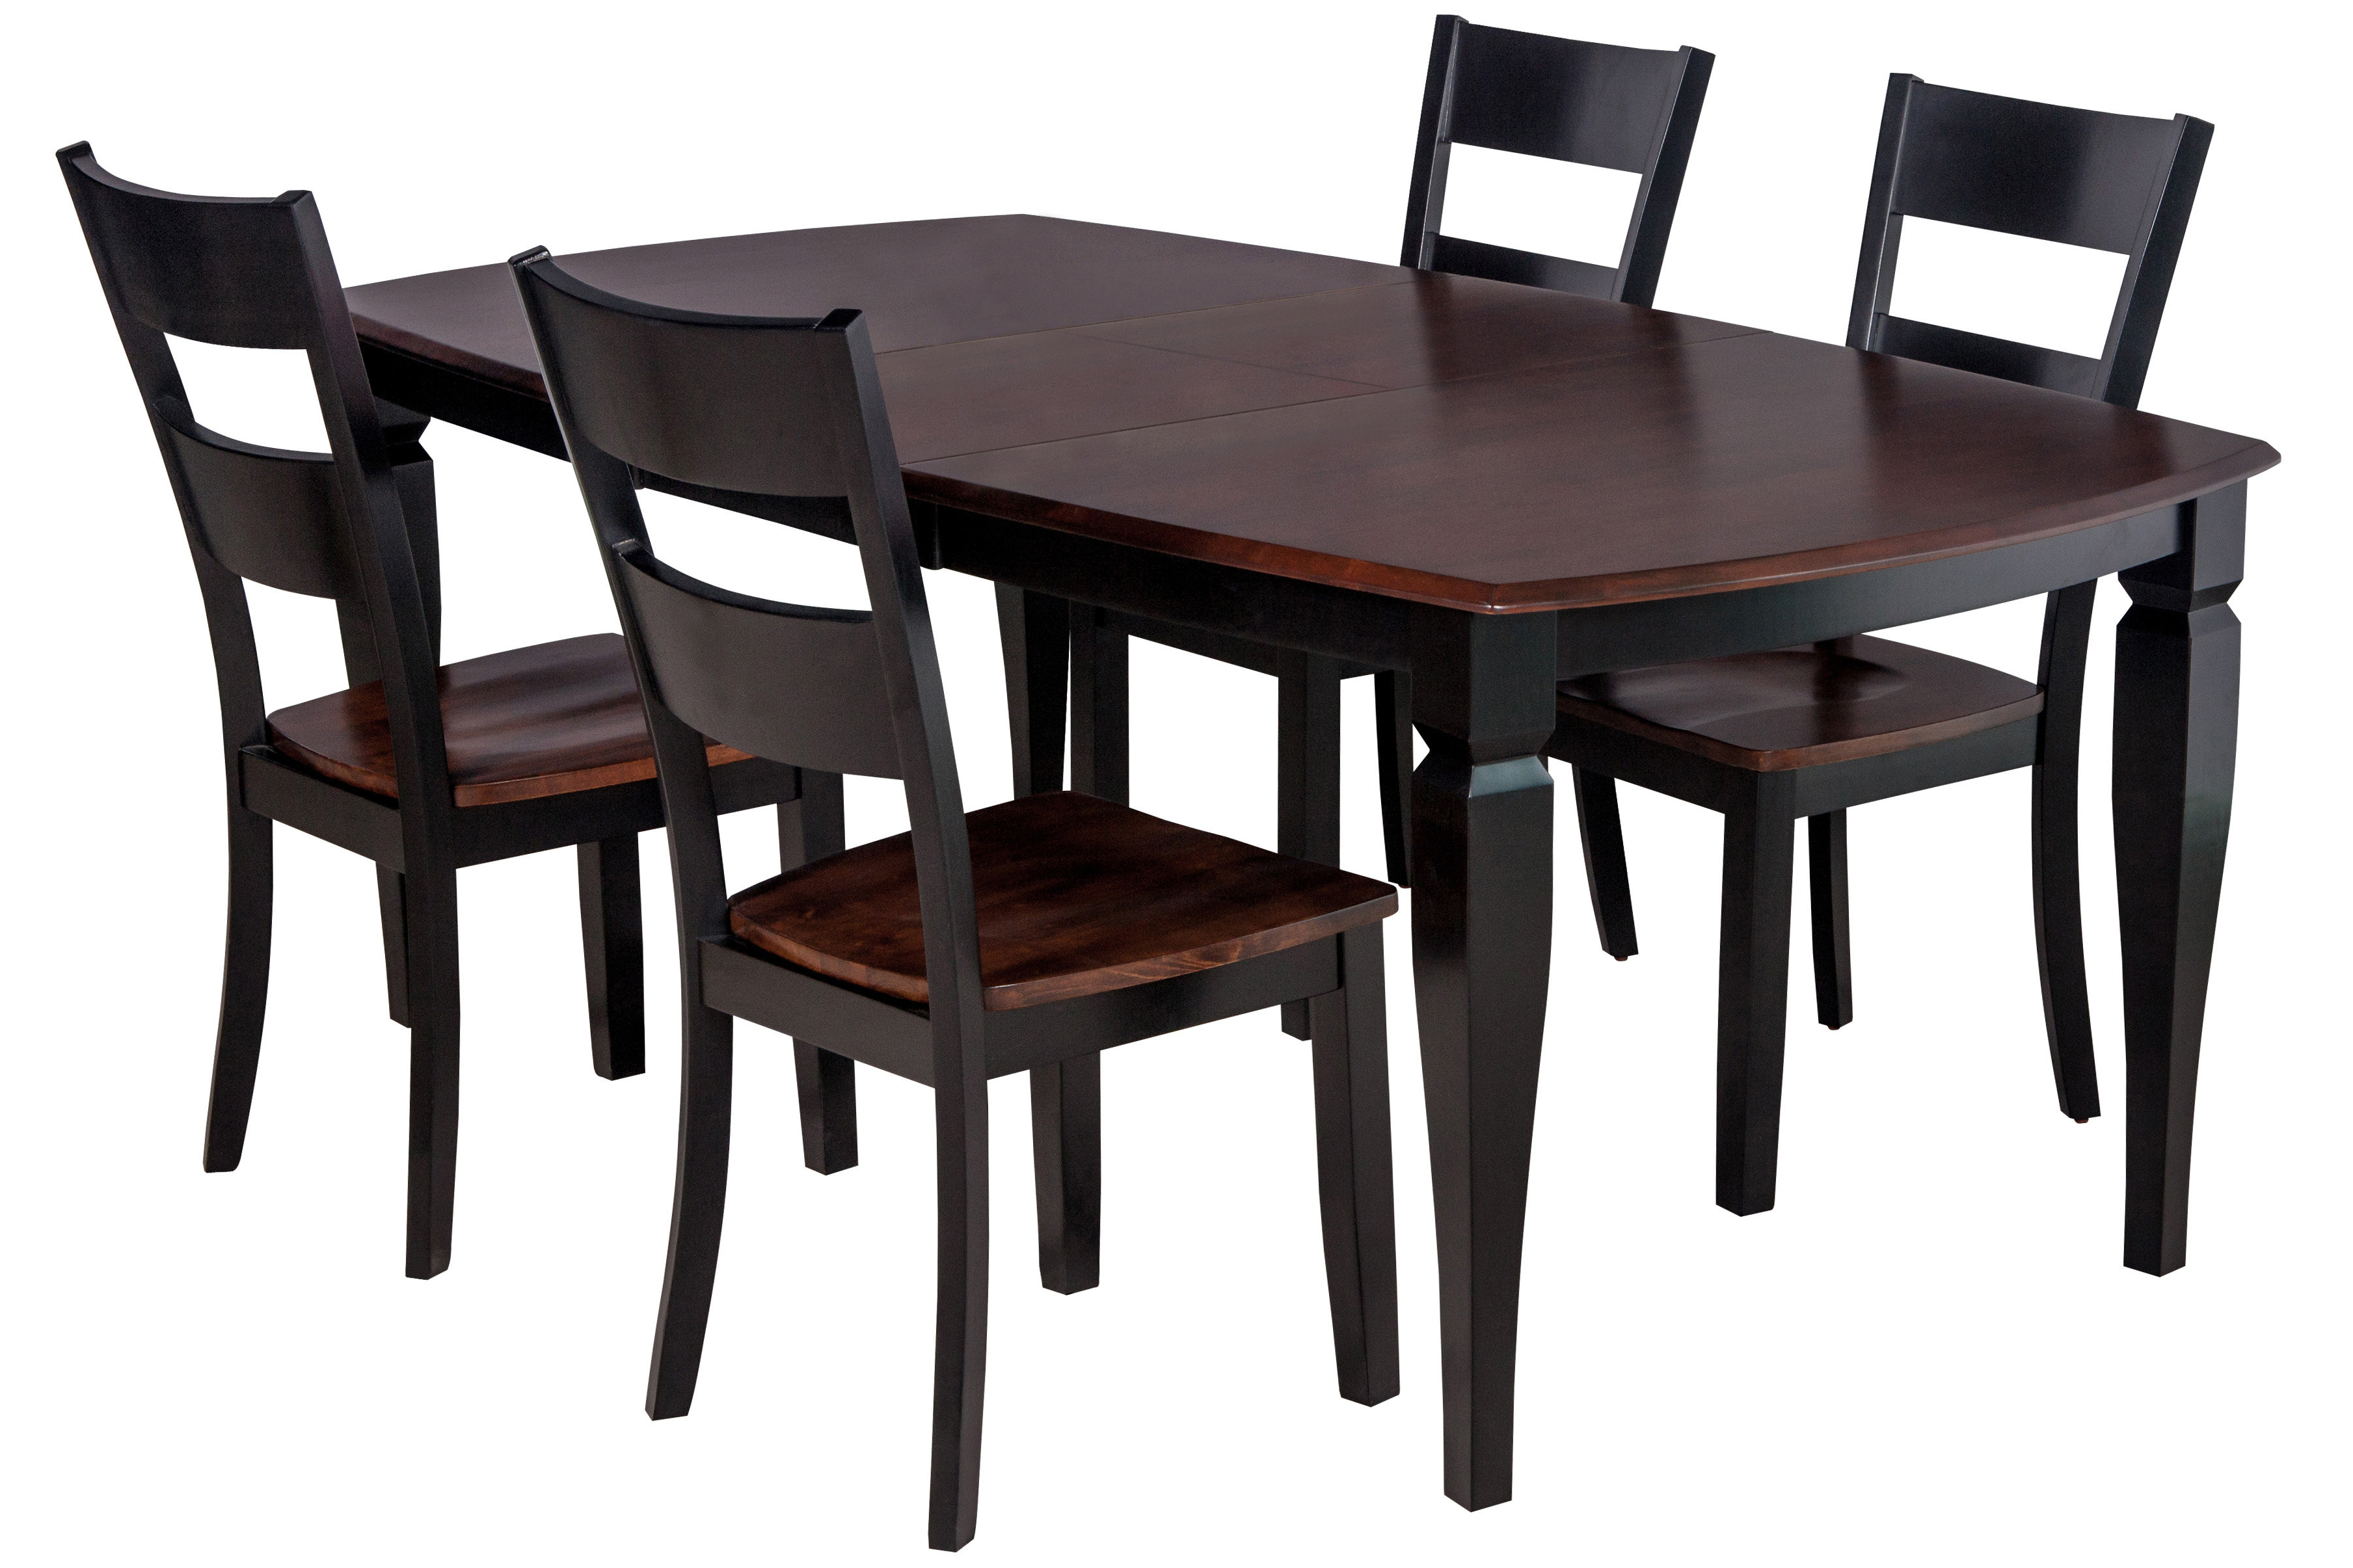 Adan 5 Piece Solid Wood Dining Sets (Set Of 5) Pertaining To Preferred Ttpfurnish Victoria 5 Piece Solid Wood Dining Set (View 5 of 25)